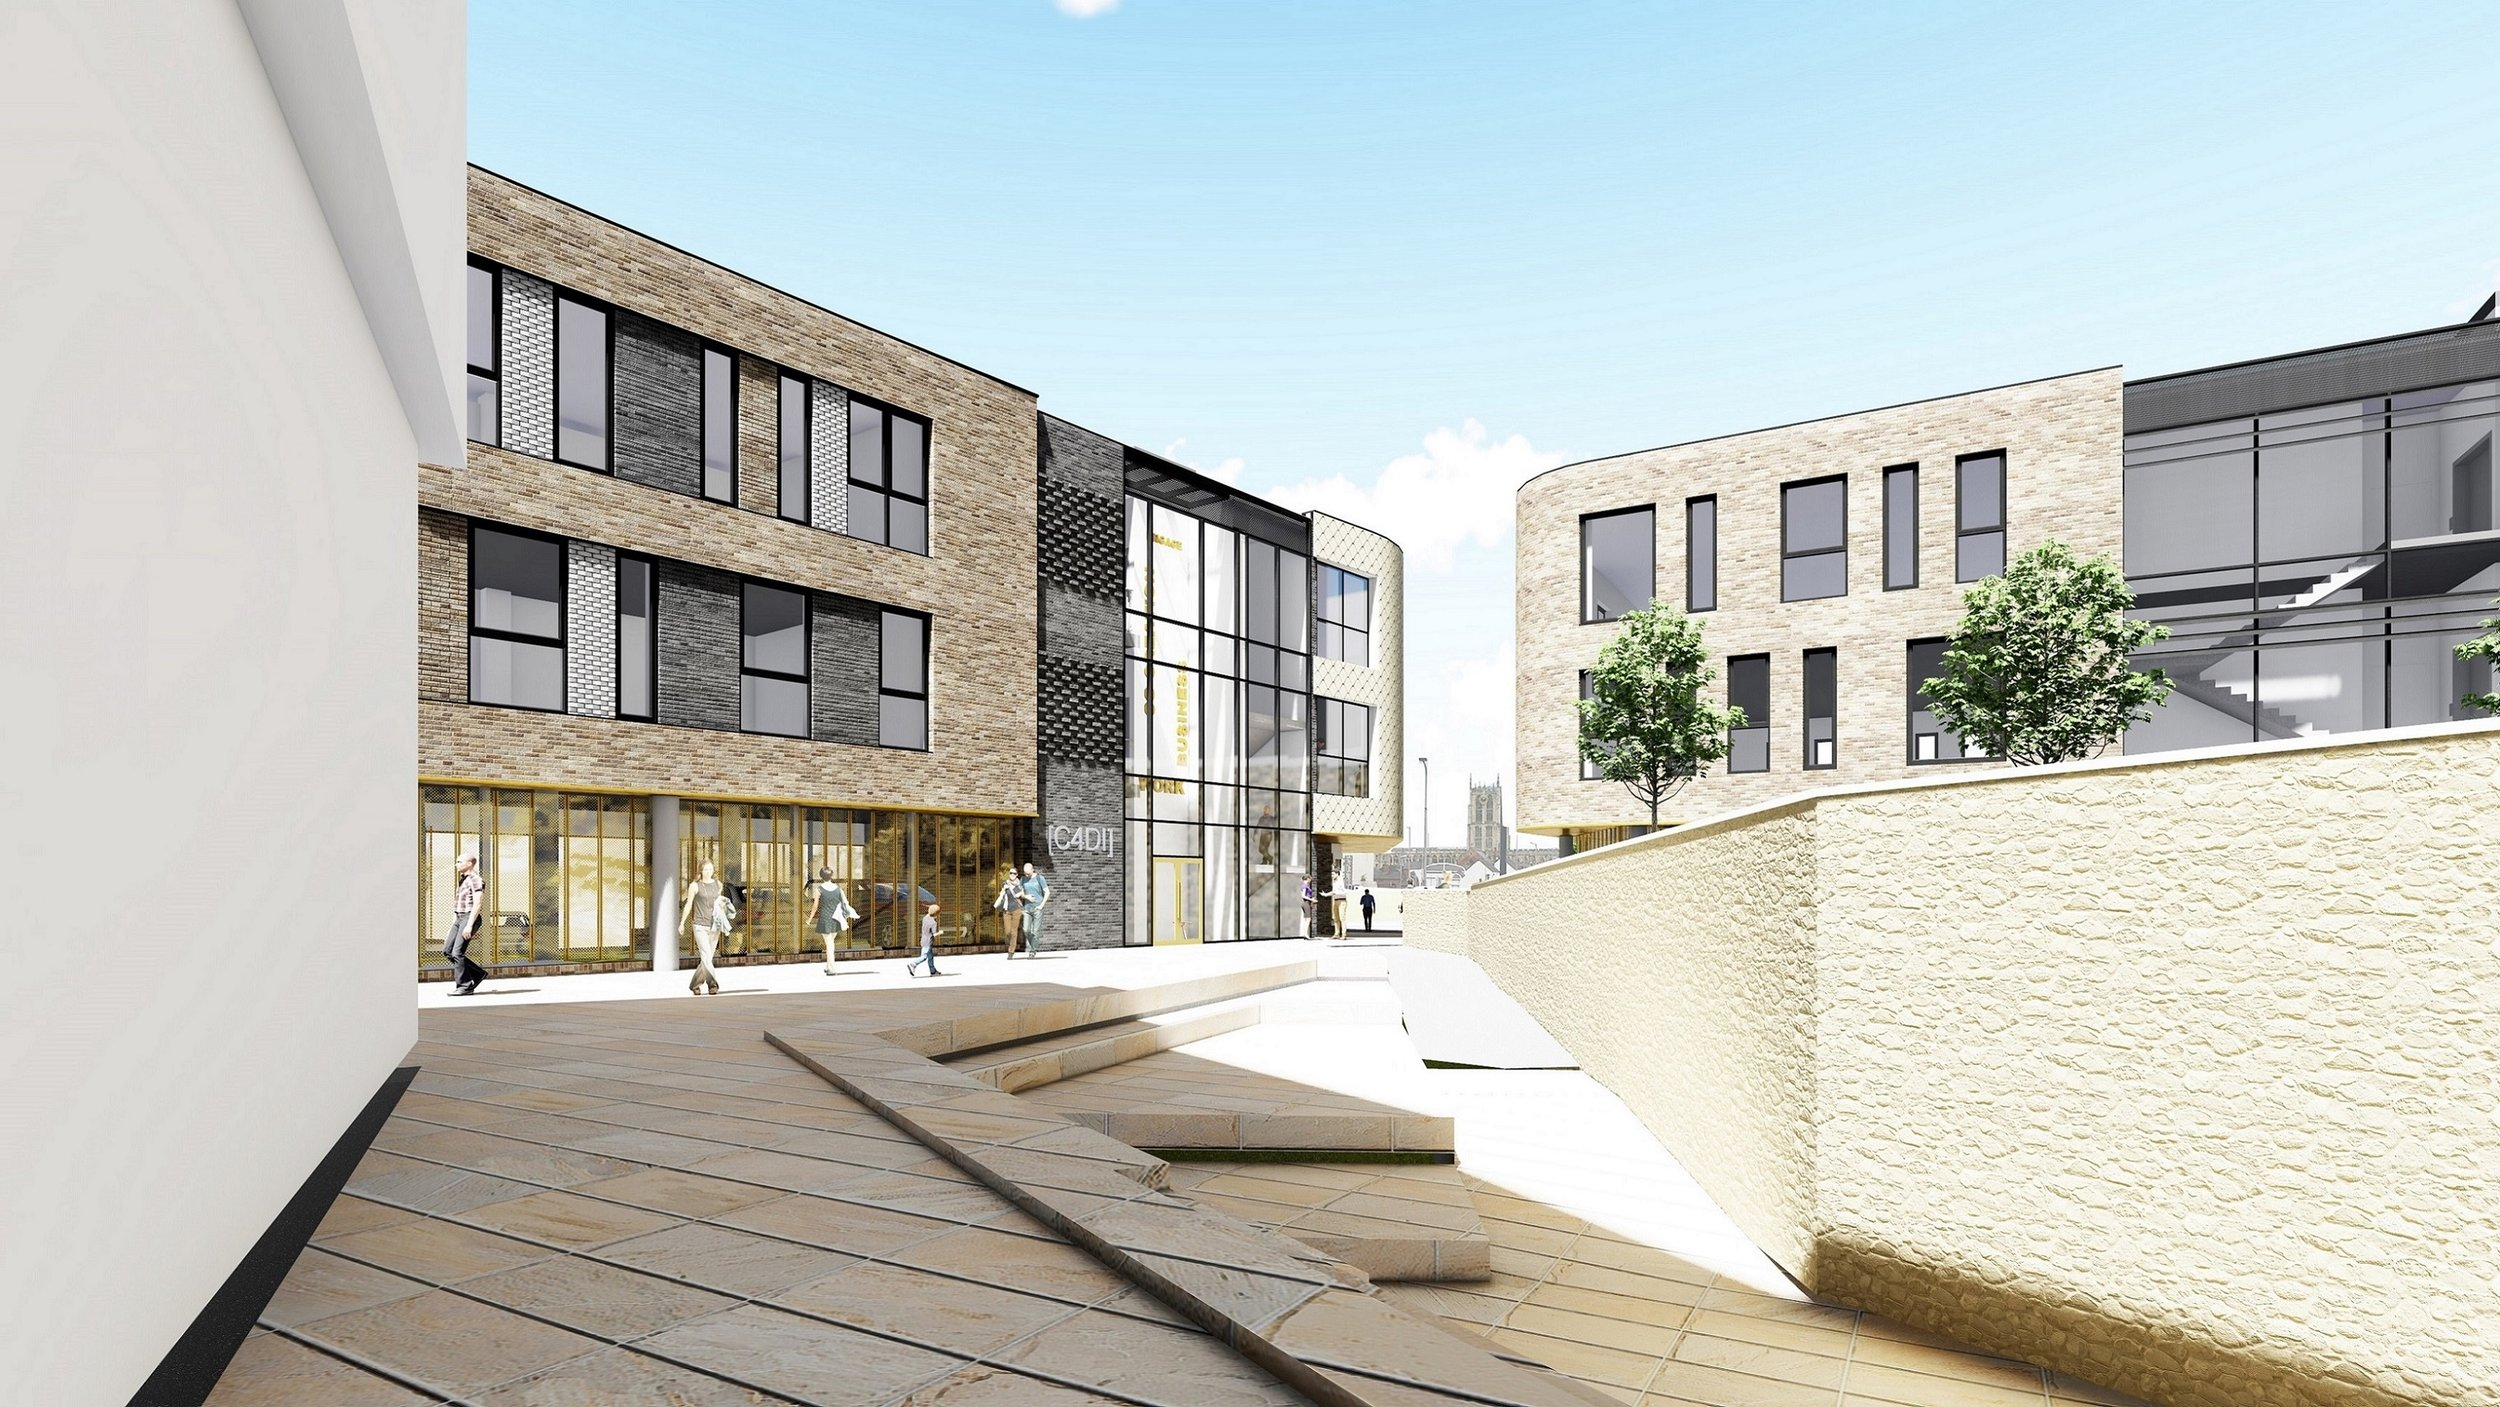 The new buildings proposed for Wykeland's @TheDock development, looking from the C4DI tech hub across a central plaza towards Humber Street.